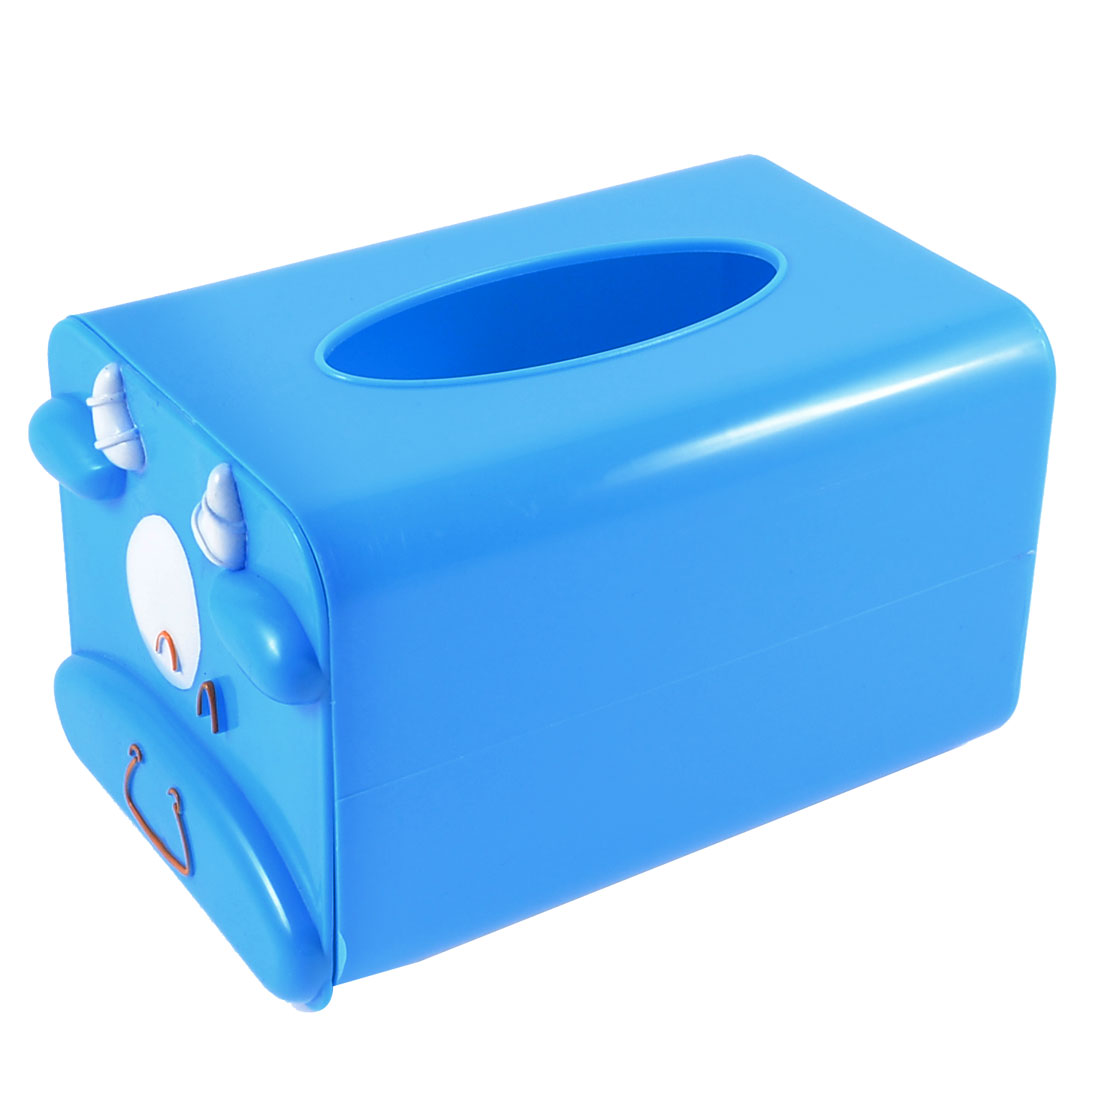 Household Cow Head Design Oval Hole Top Tissue Box Container Blue